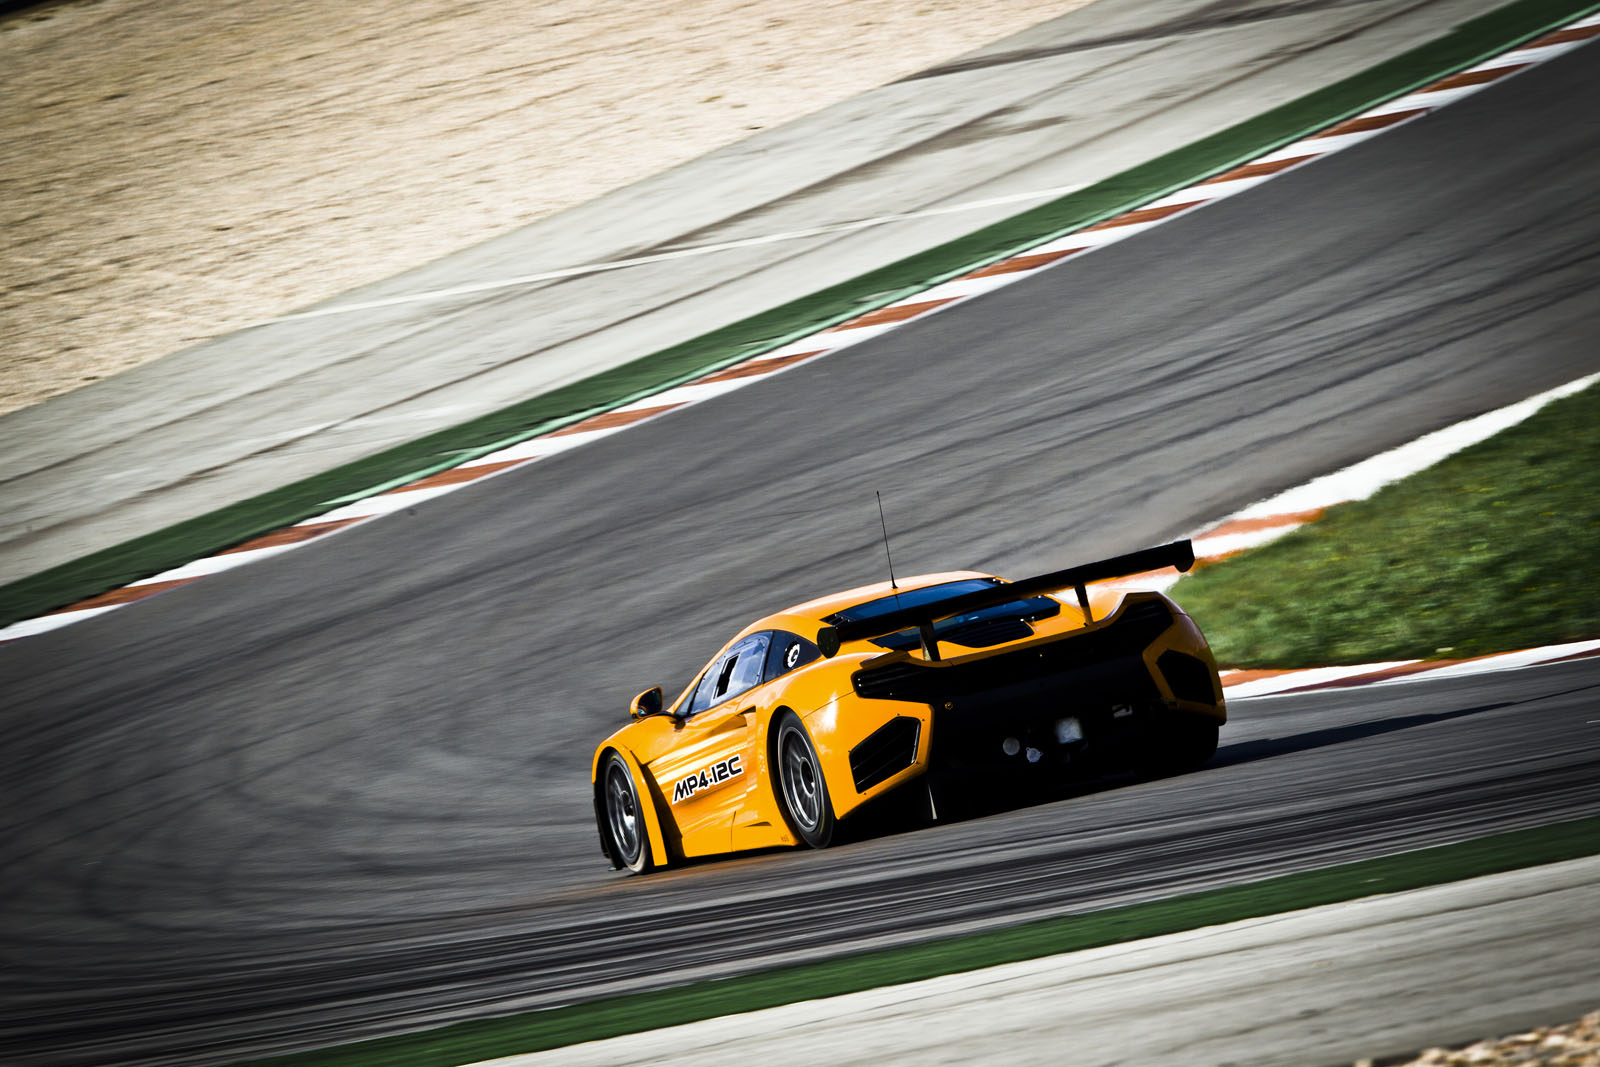 MP4 12C GT3 12 MP4 12C GT3 Variant Fuel Economic and Energy Efficient